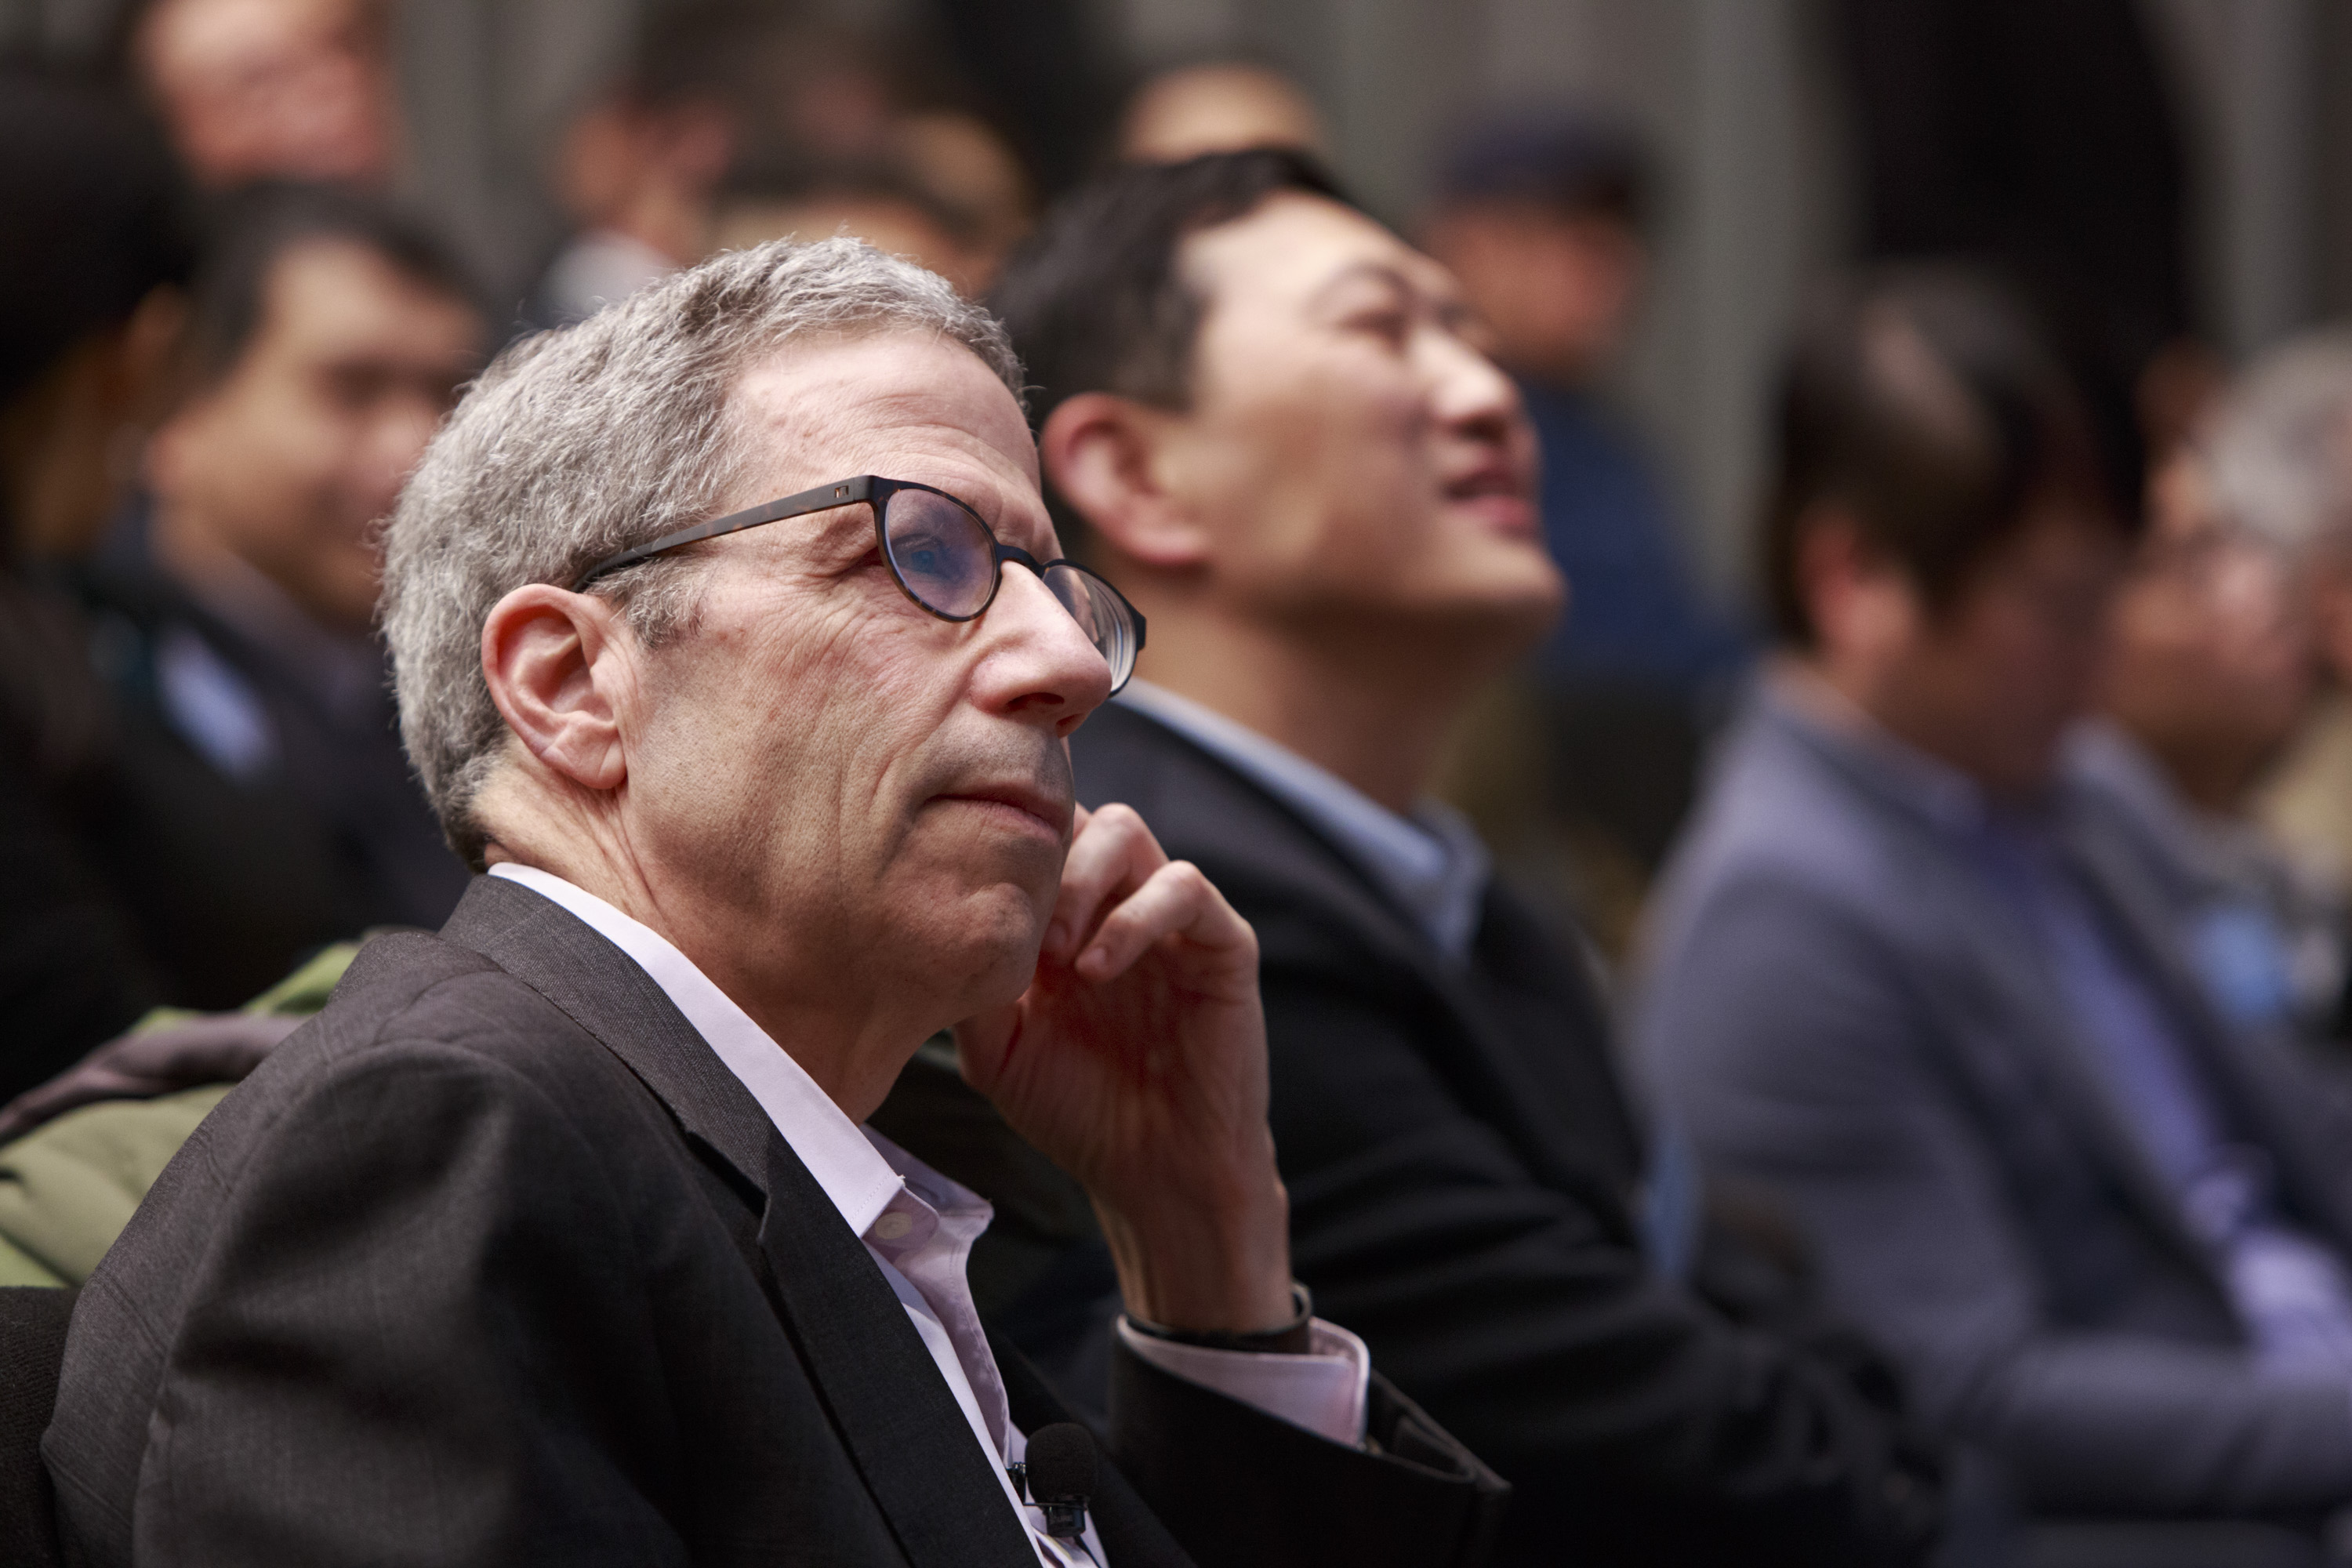 Professor Eric Maskin listens to the Welcome Remarks and Introduction delivered by Professor Chenggang Xu.